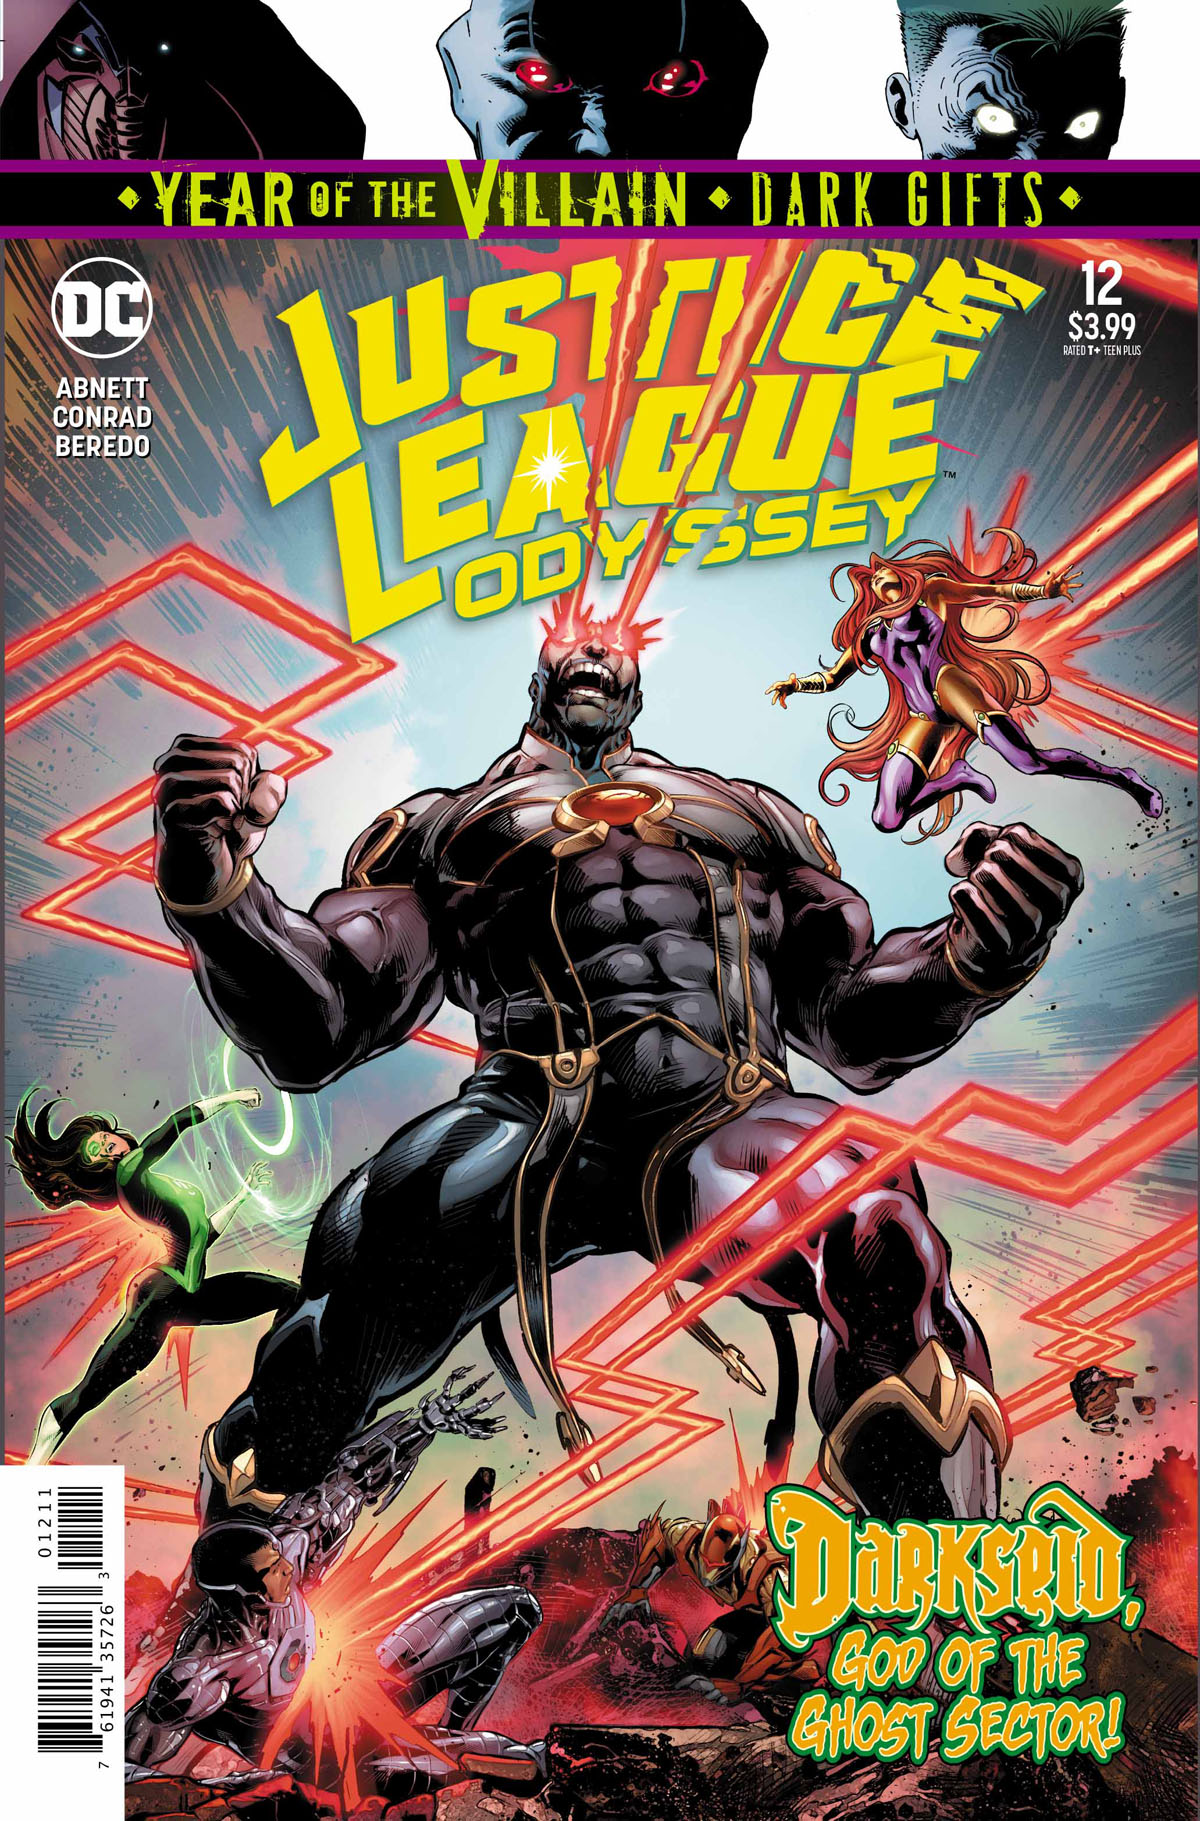 Justice League Odyssey #12 cover